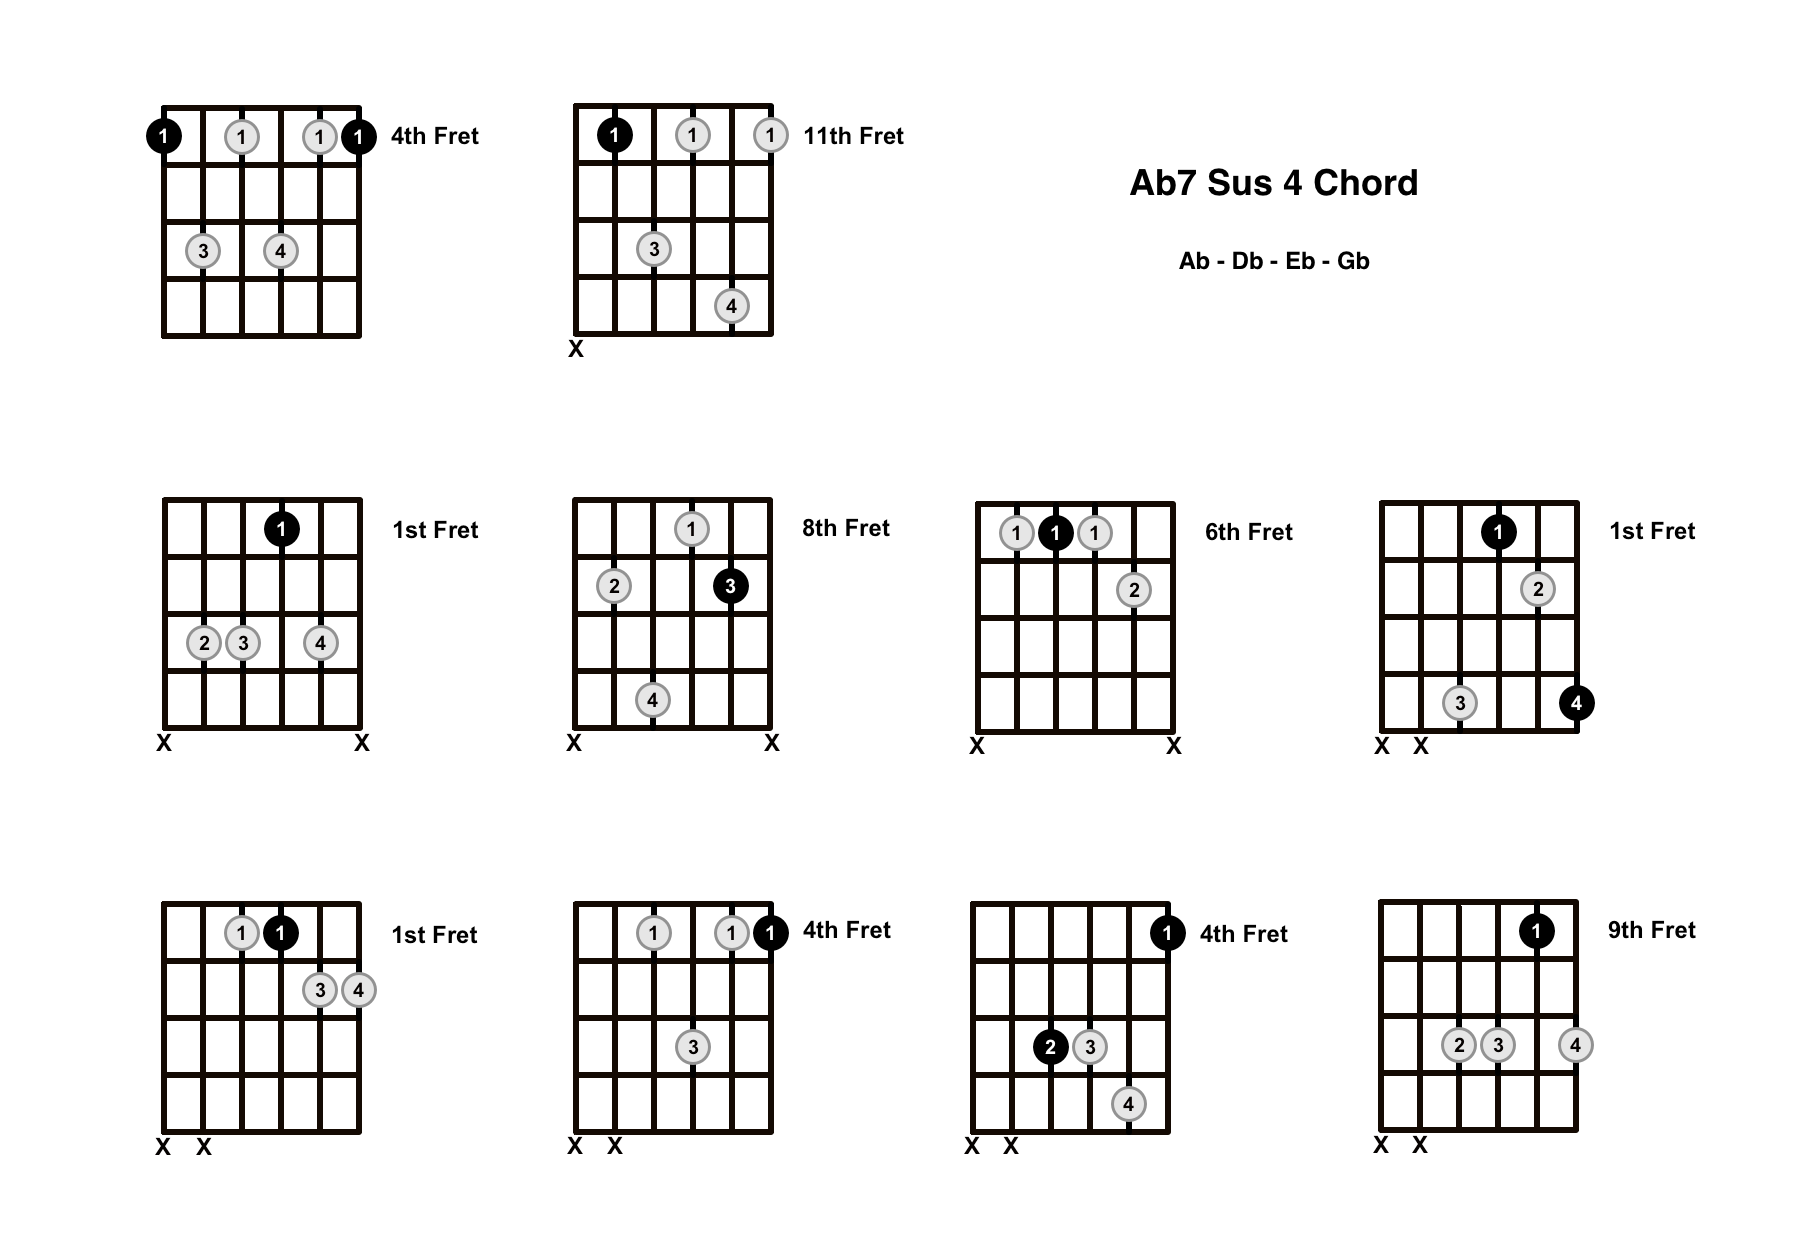 Ab7 Sus 4 Chord On The Guitar (A Flat 7 Suspended 4) – Diagrams, Finger Positions and Theory